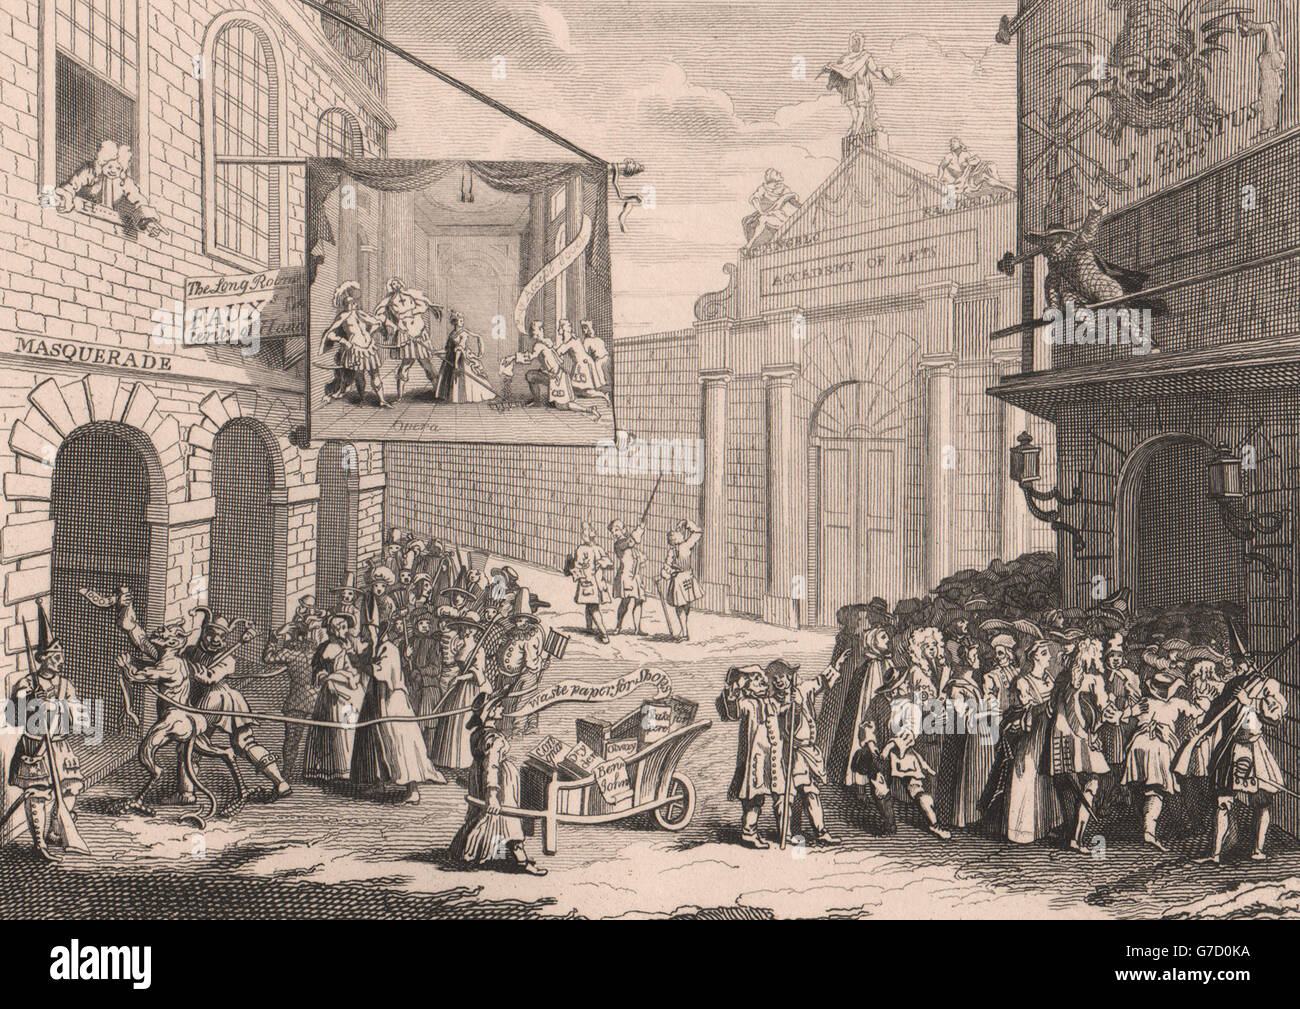 'Masquerades and Operas, Burlington gate'. After William HOGARTH, print 1833 - Stock Image